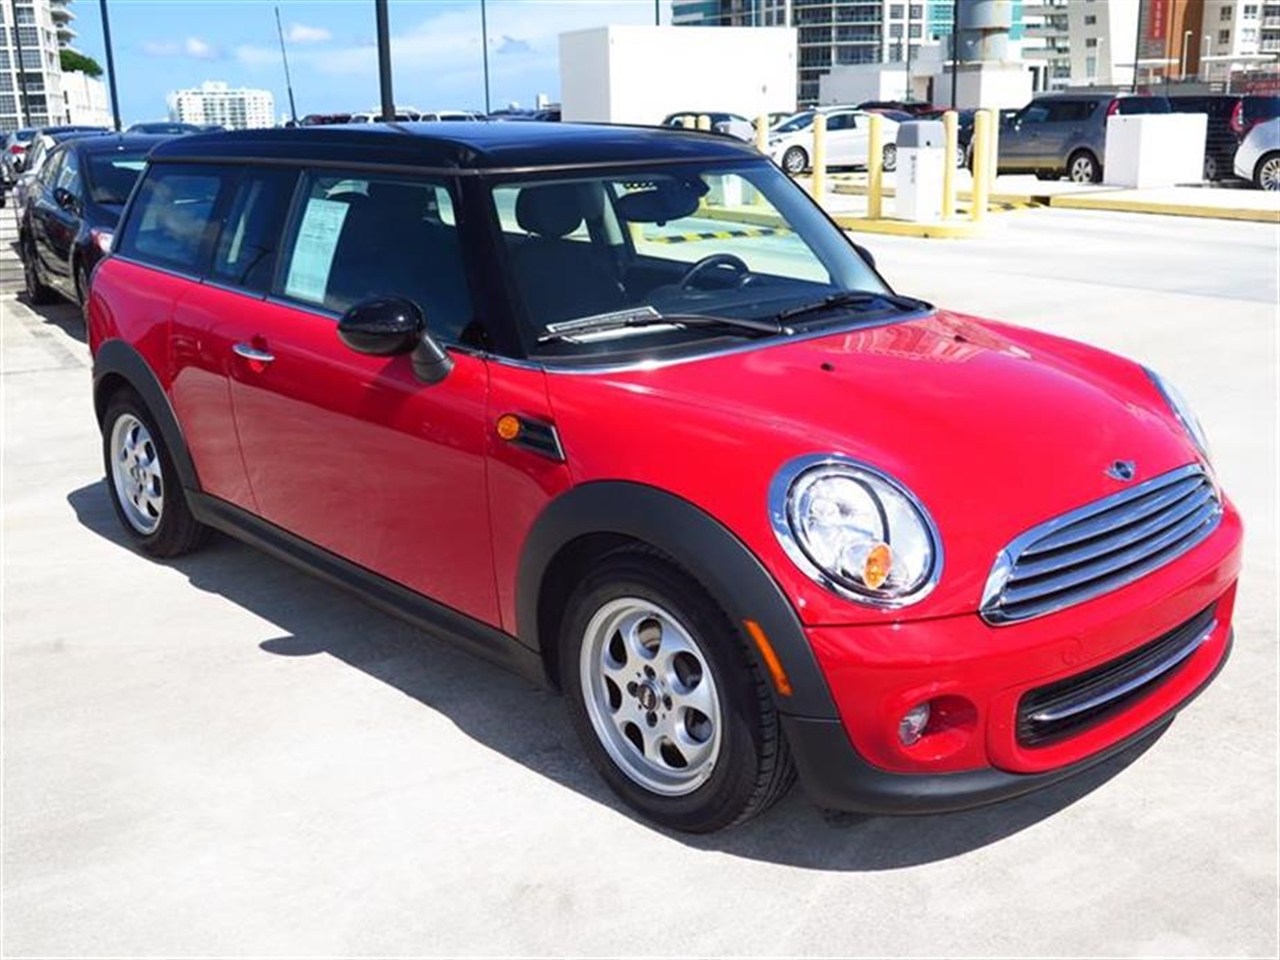 2013 MINI COOPER CLUBMAN 2dr Cpe 12838 miles 1 rear cup holder 2 12V pwr outlets 5050 split